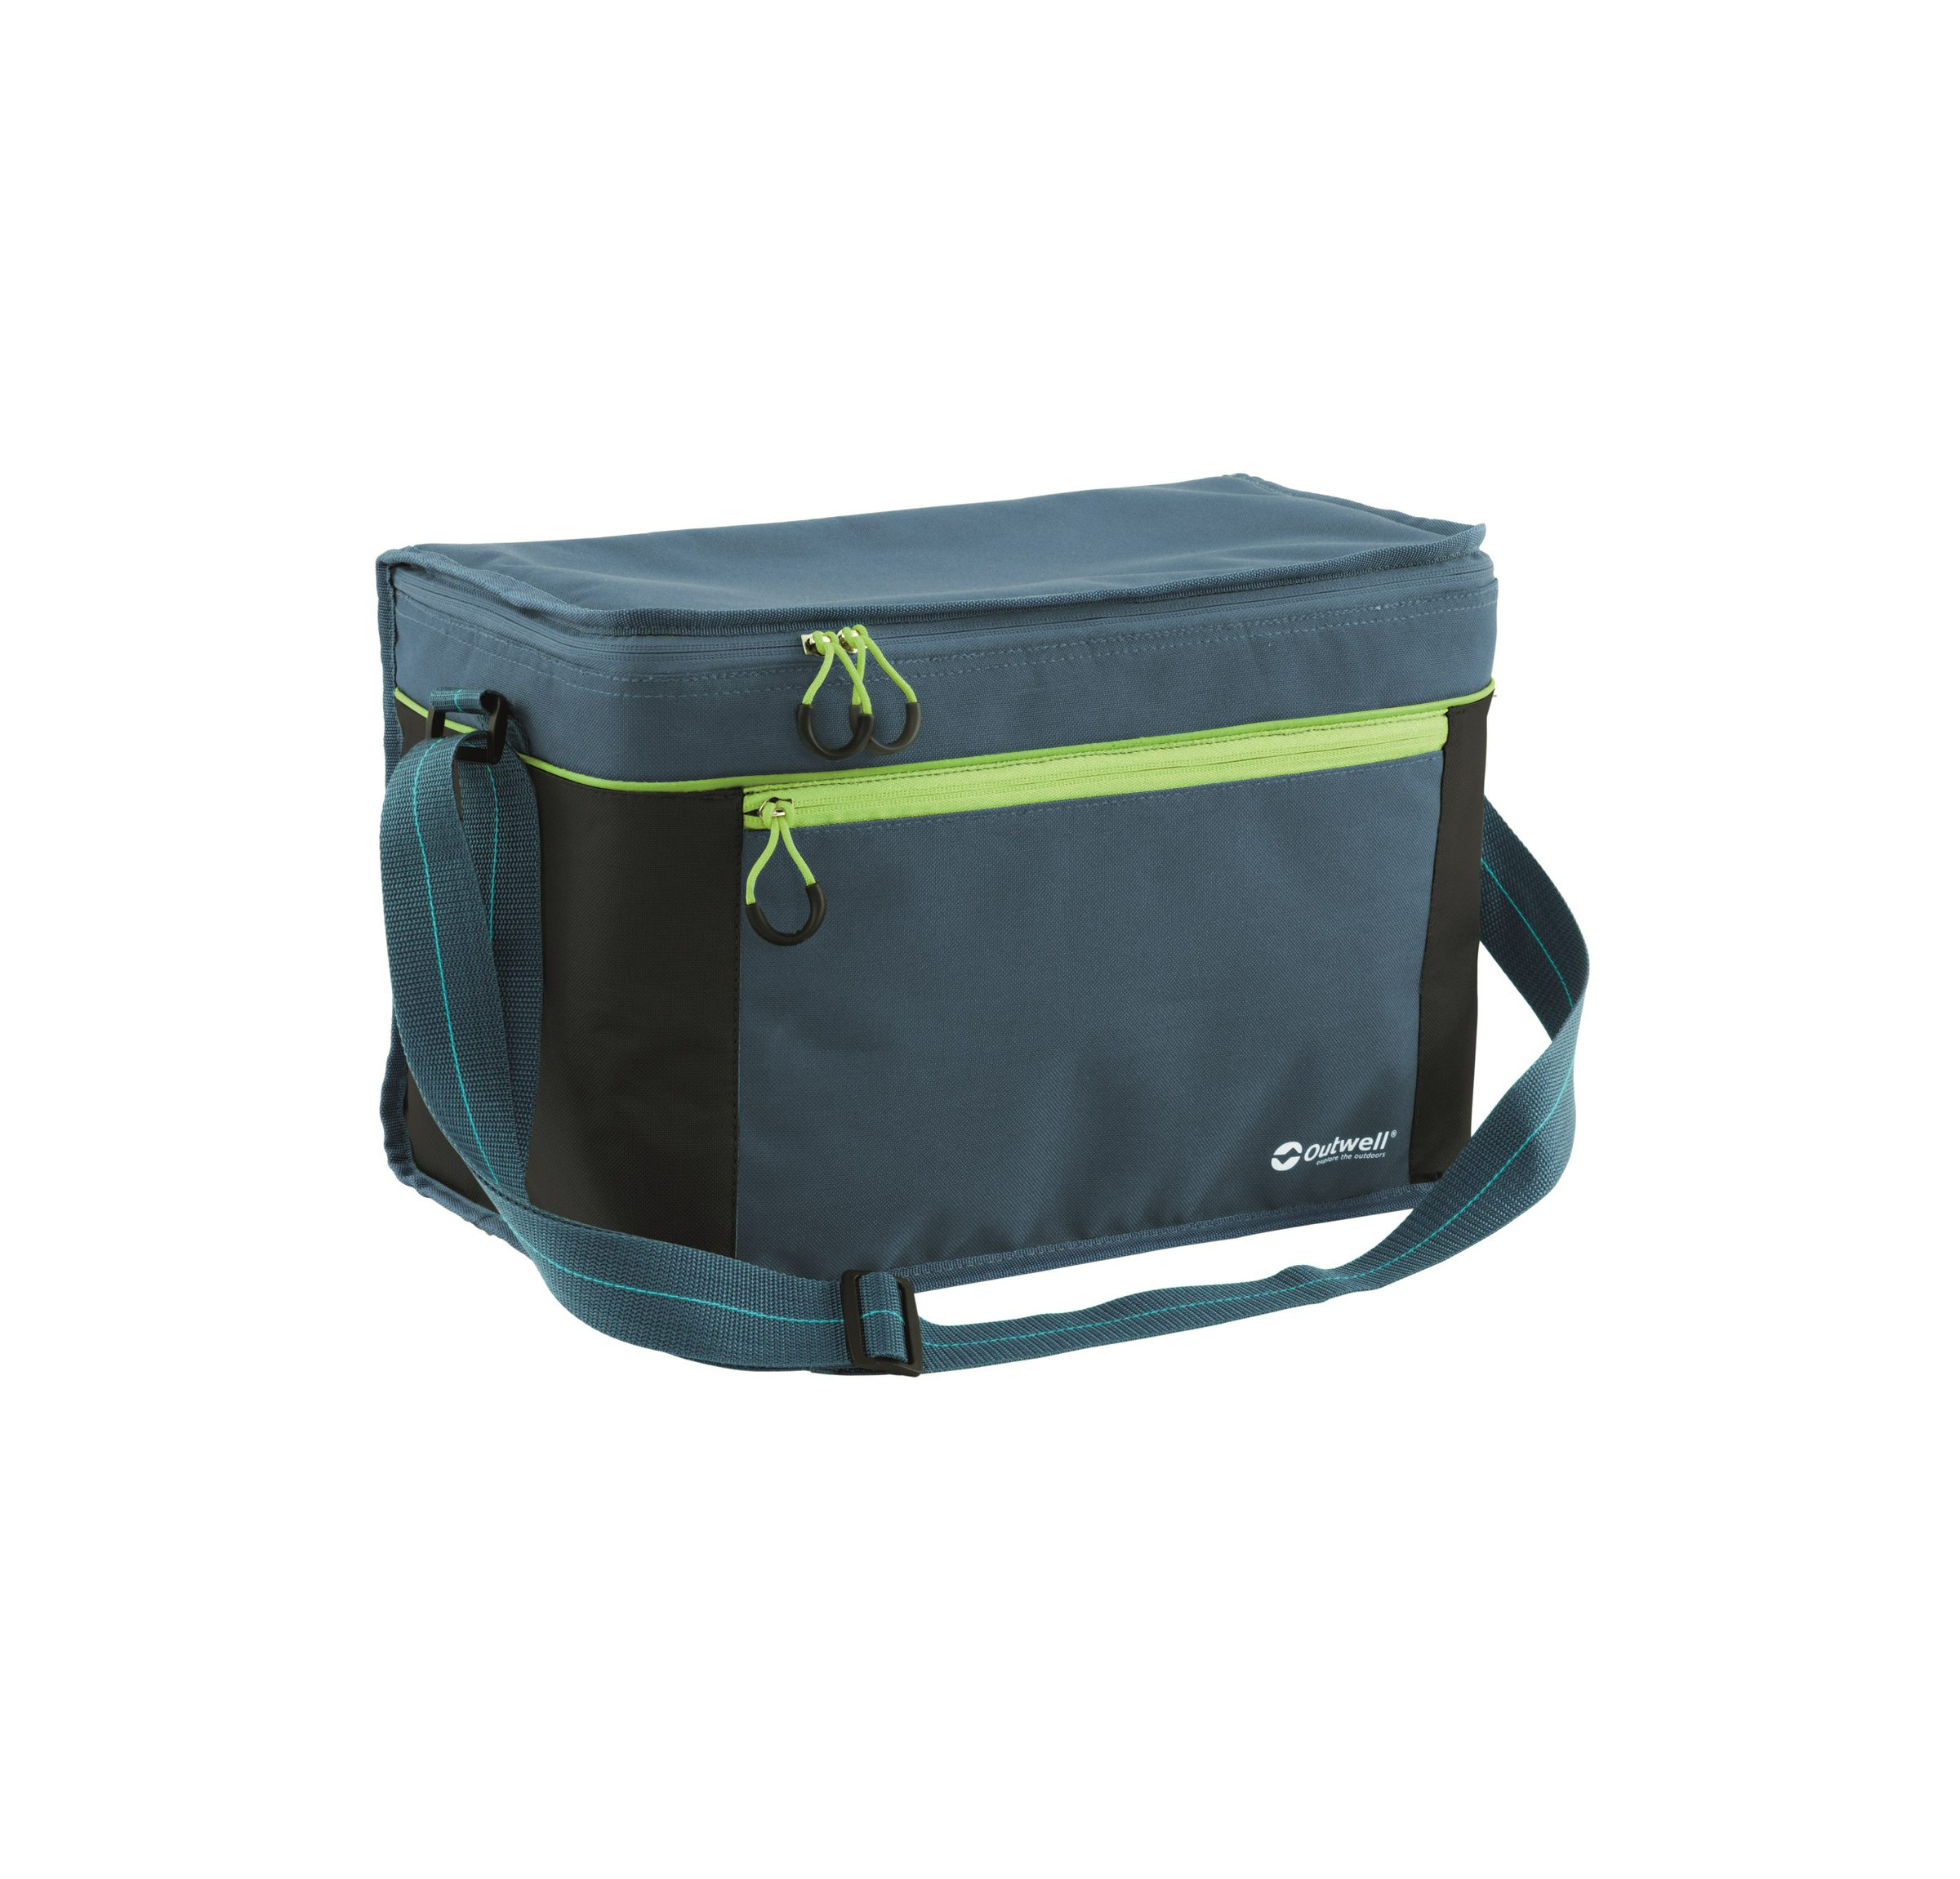 Outwell Petrel L Cool Bag